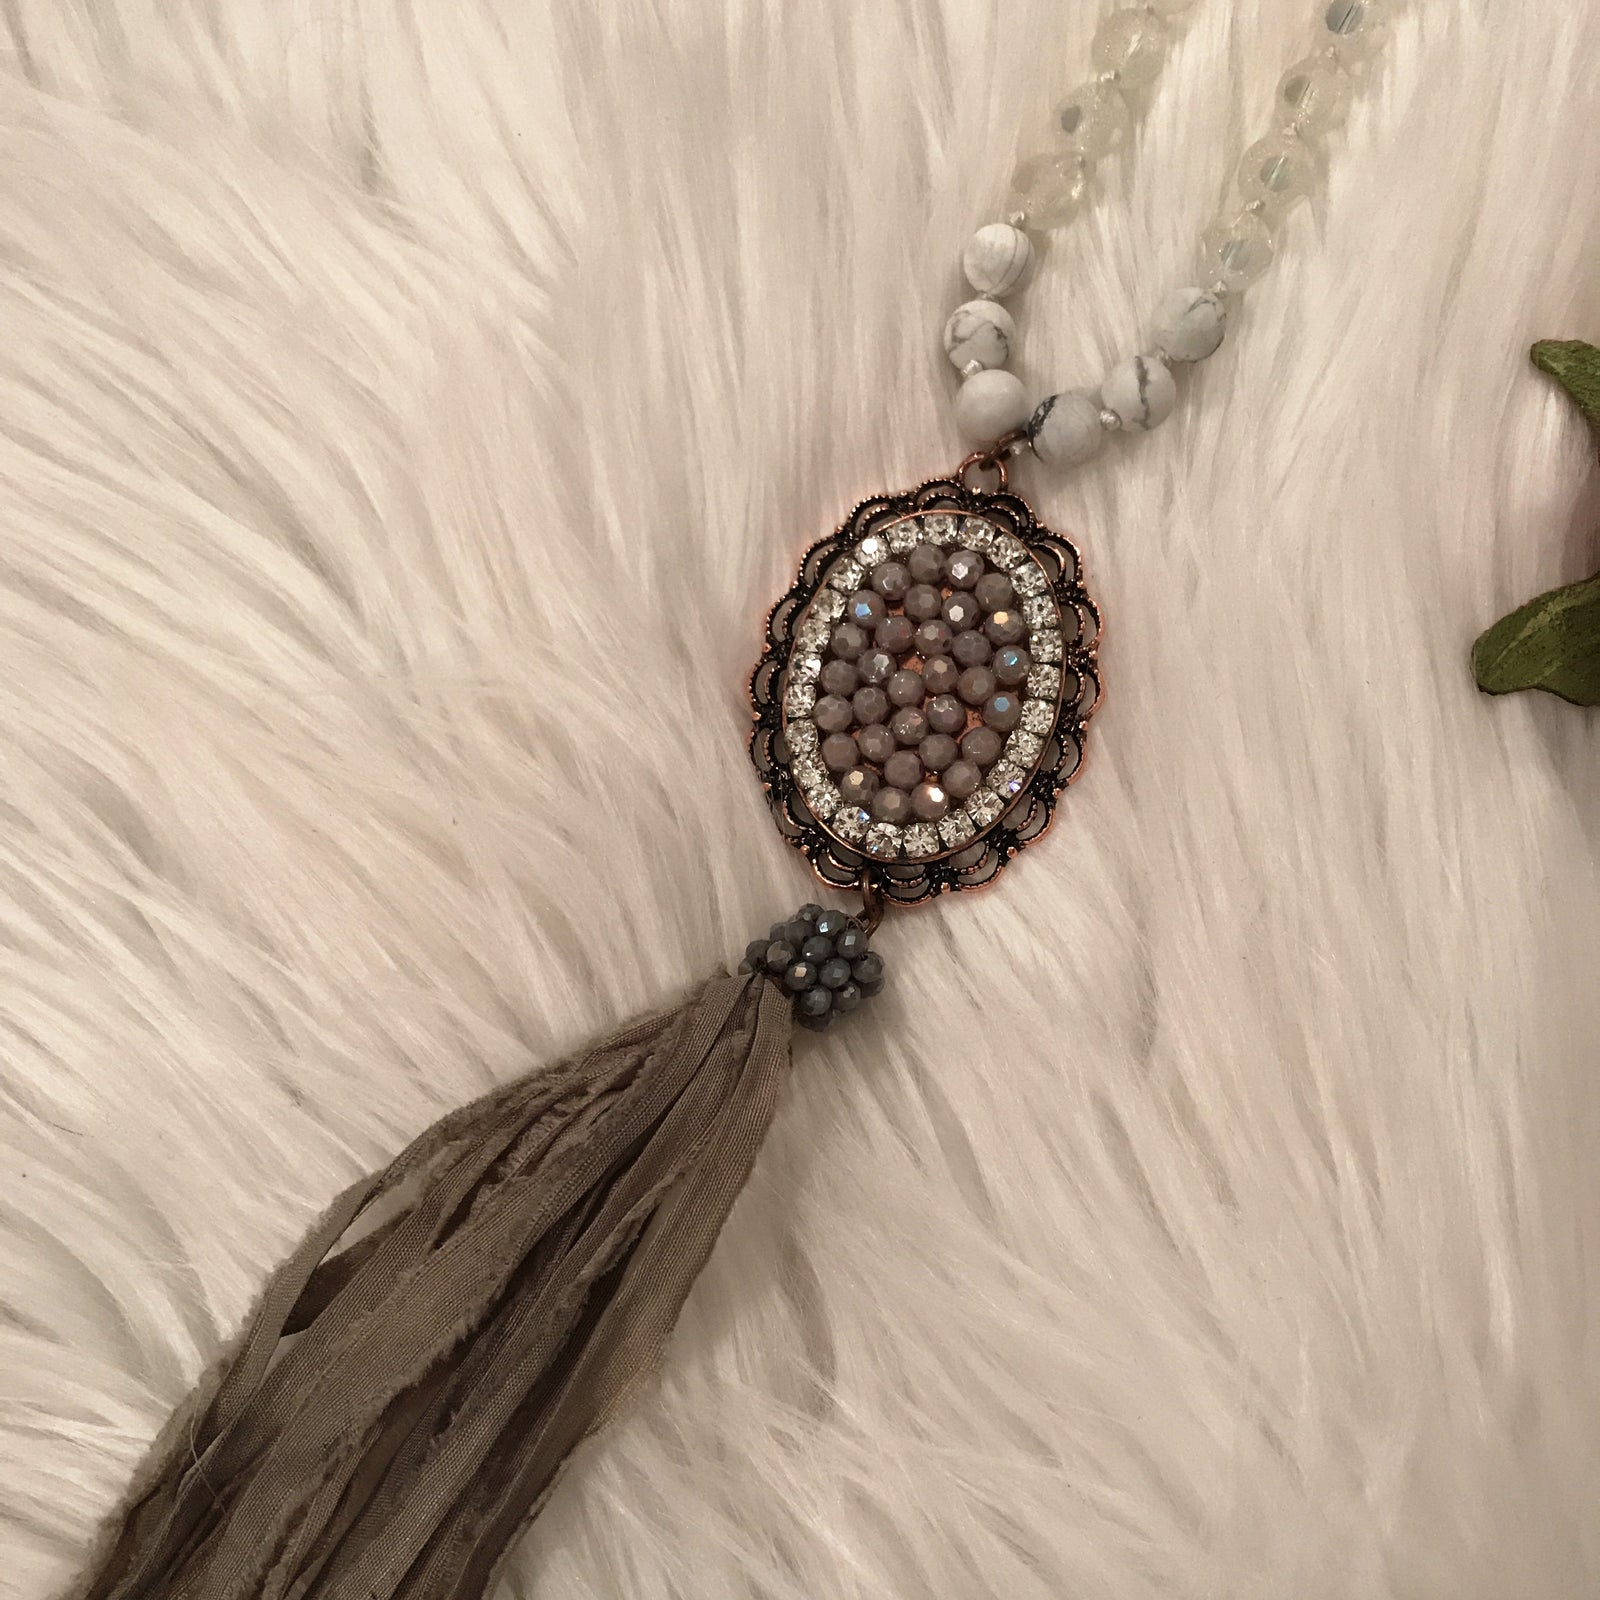 Antique Crystal With Fringe